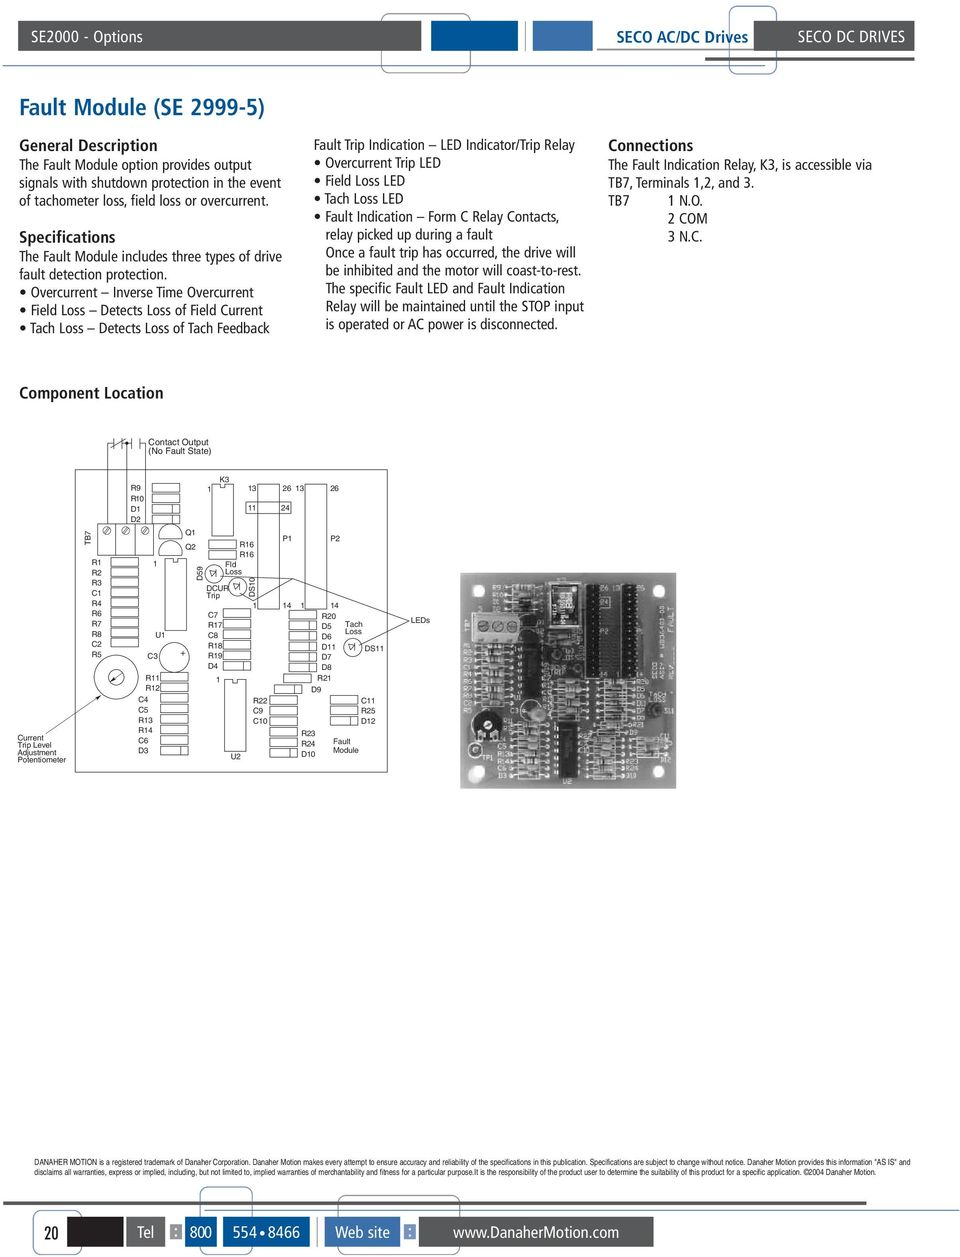 Forward And Reverse Operation Of The Dynamic Braking Circuit 2 August Seco Dc Drives Table Contents Pdf Overcurrent Inverse Time Field Loss Detects Current Tach